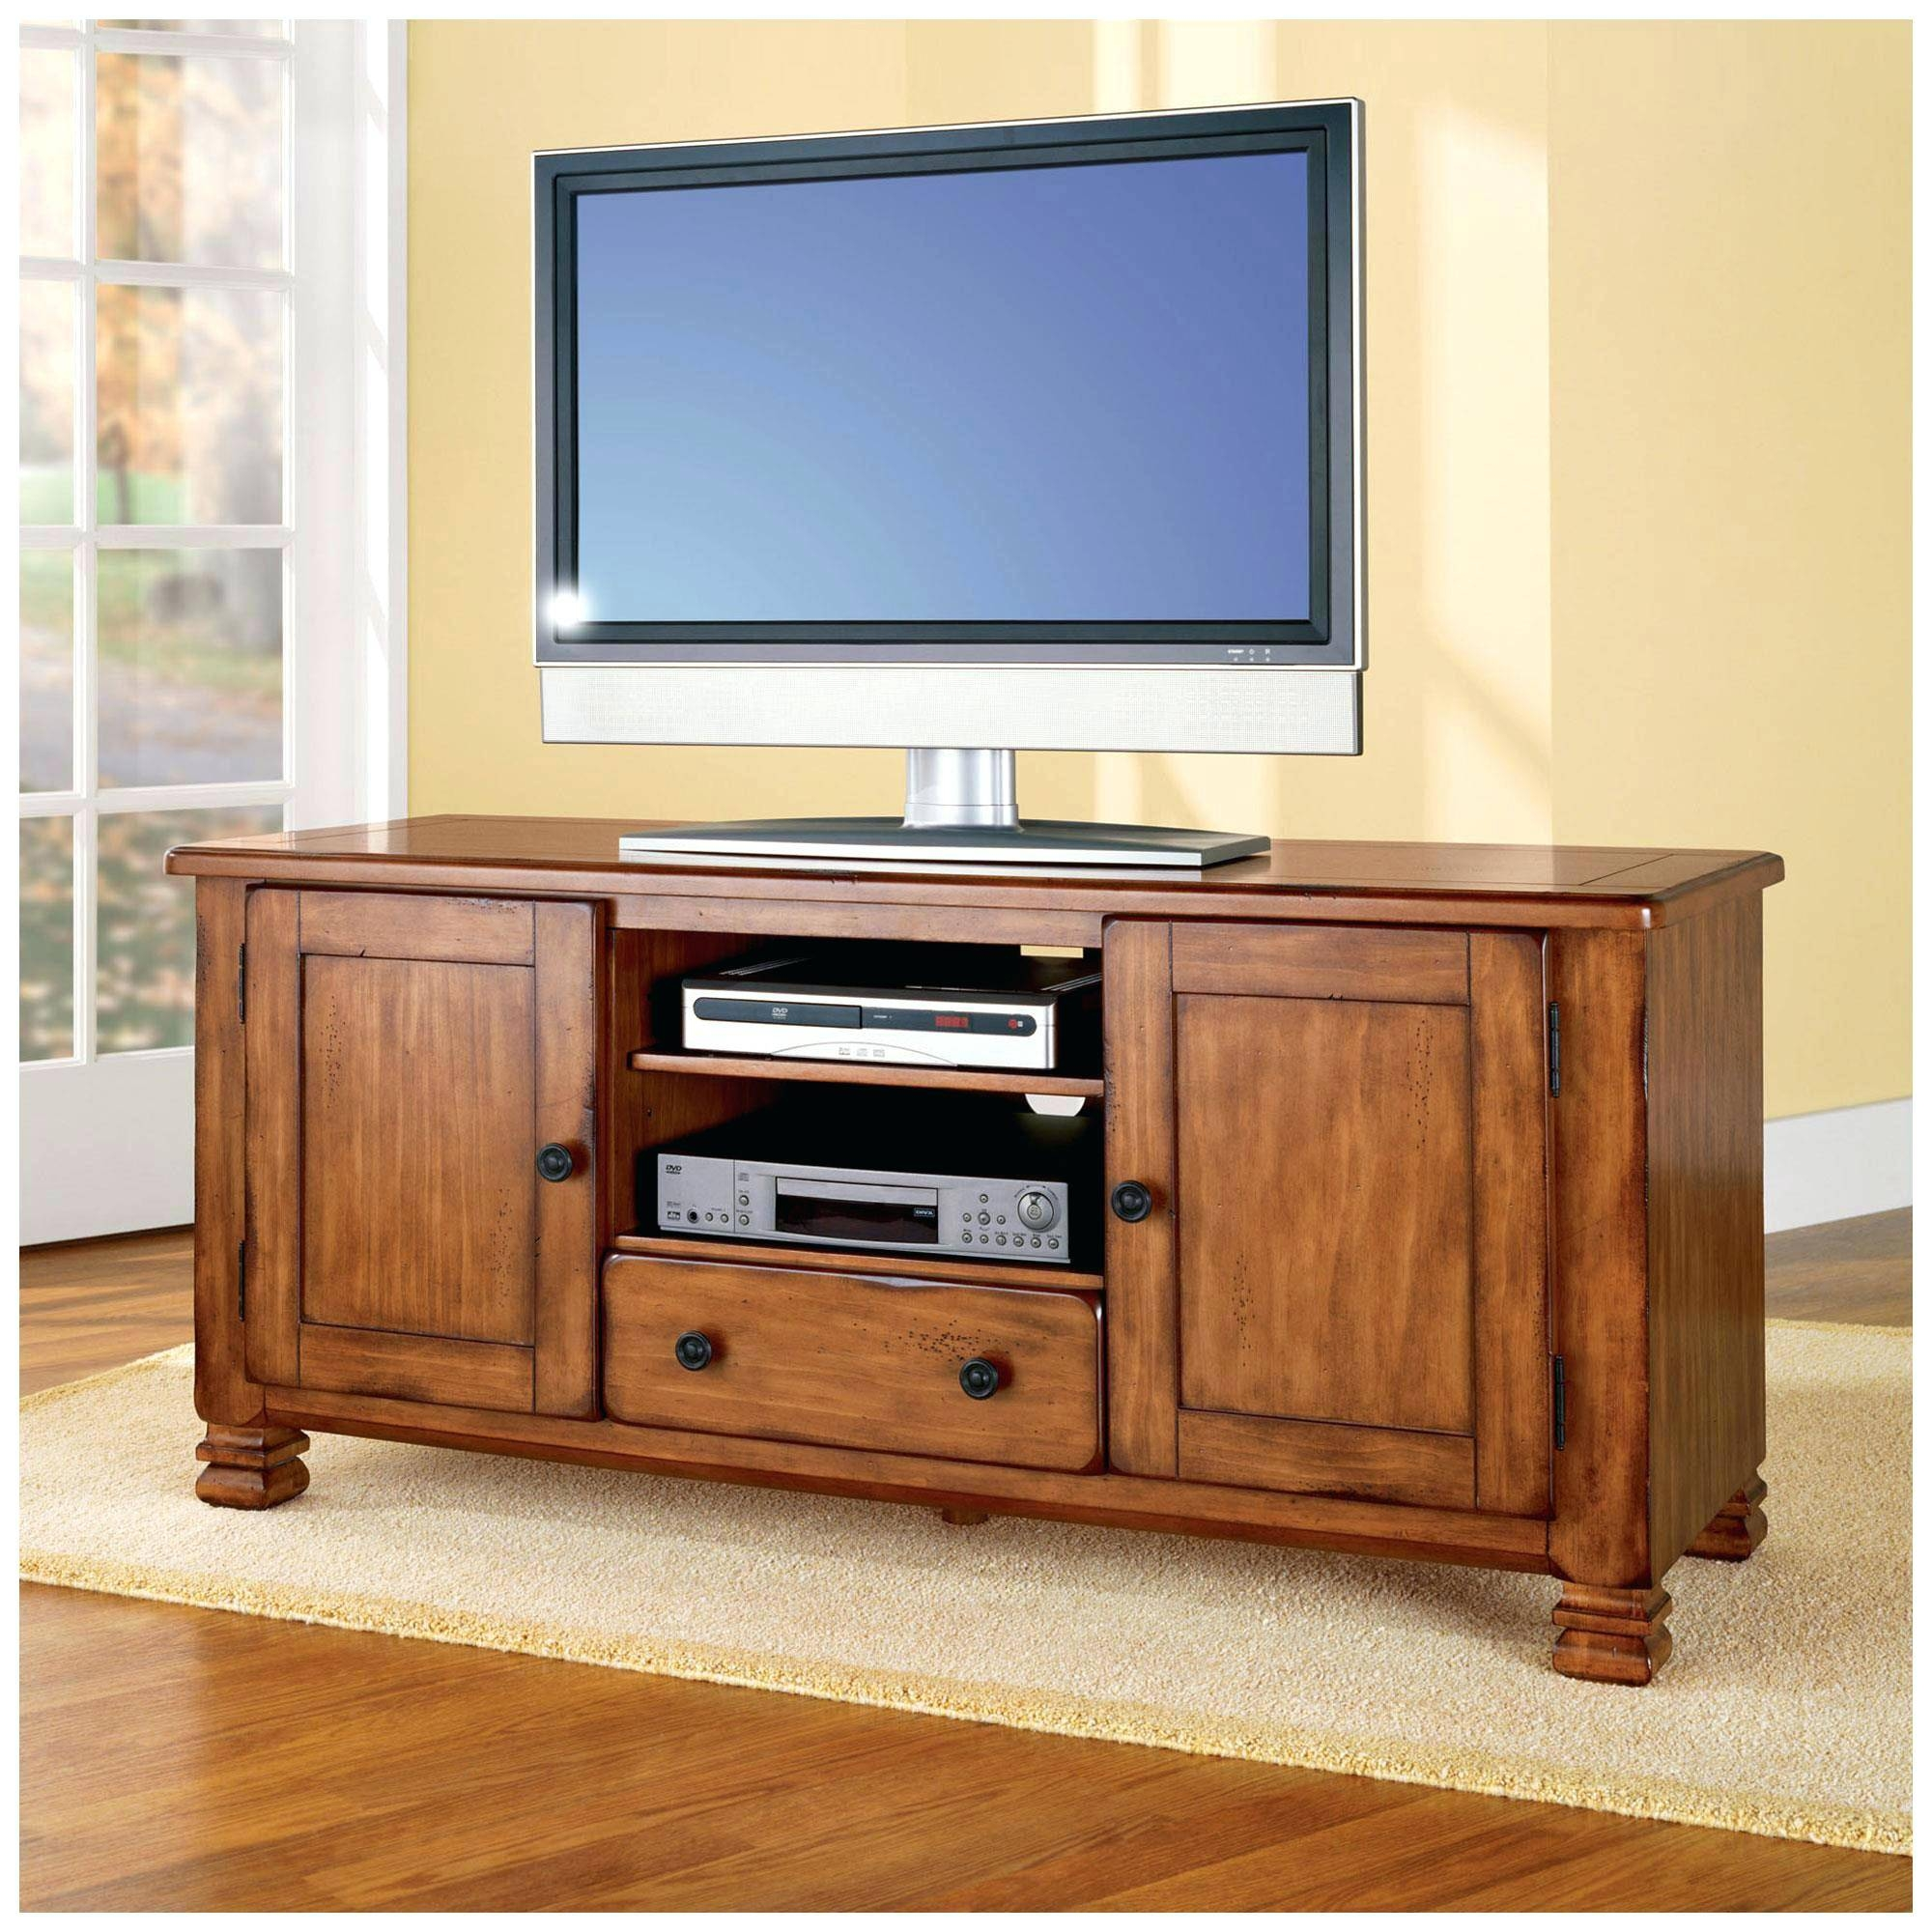 Tv Stand : Furniture Ideas 76 Ergonomic Large Size Of Tv inside Corner Oak Tv Stands for Flat Screen (Image 11 of 15)